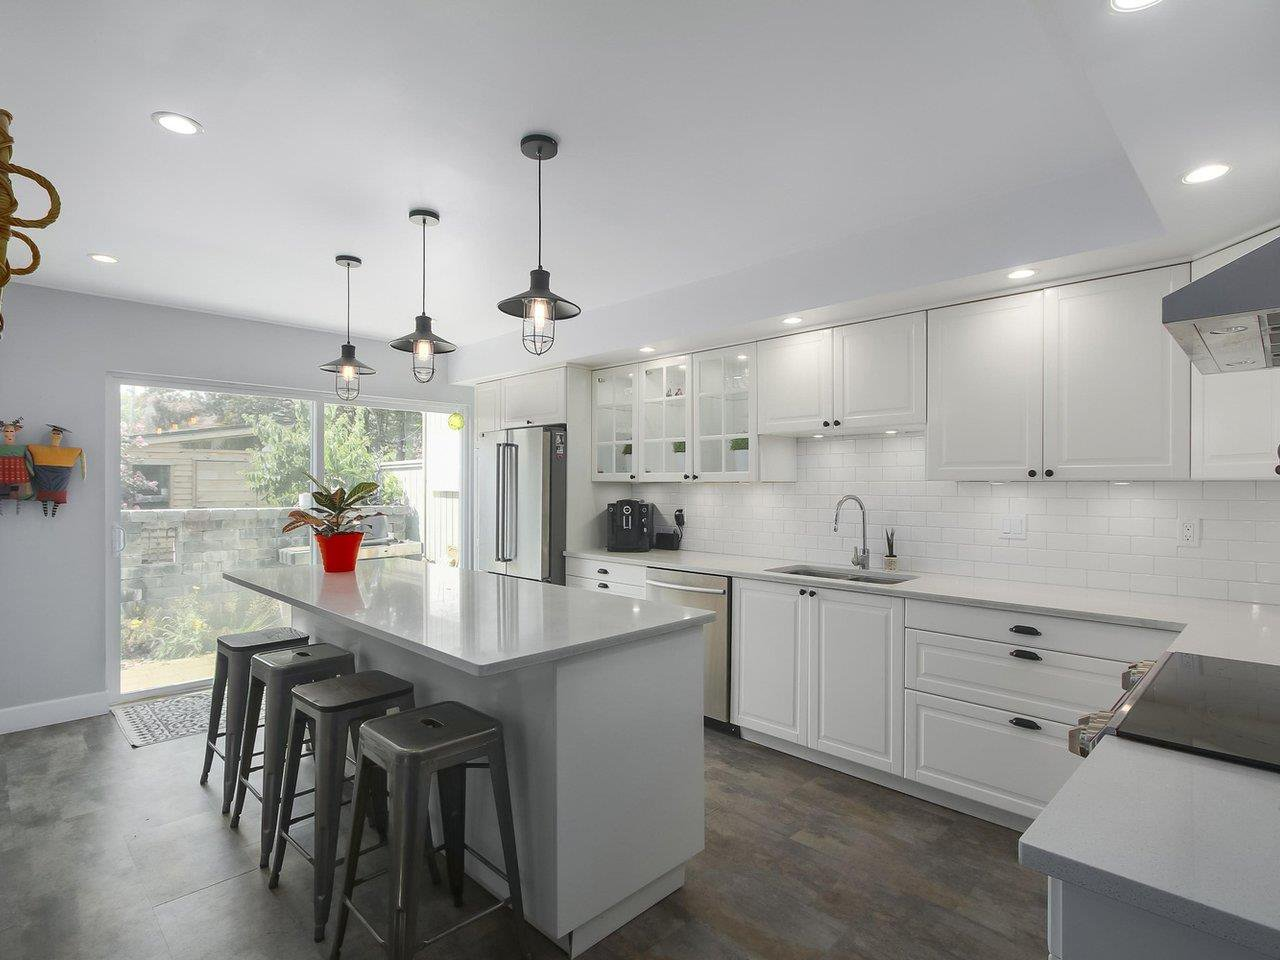 Photo 7: Photos: 4827 CENTRAL AVENUE in Delta: Hawthorne Townhouse for sale (Ladner)  : MLS®# R2391825